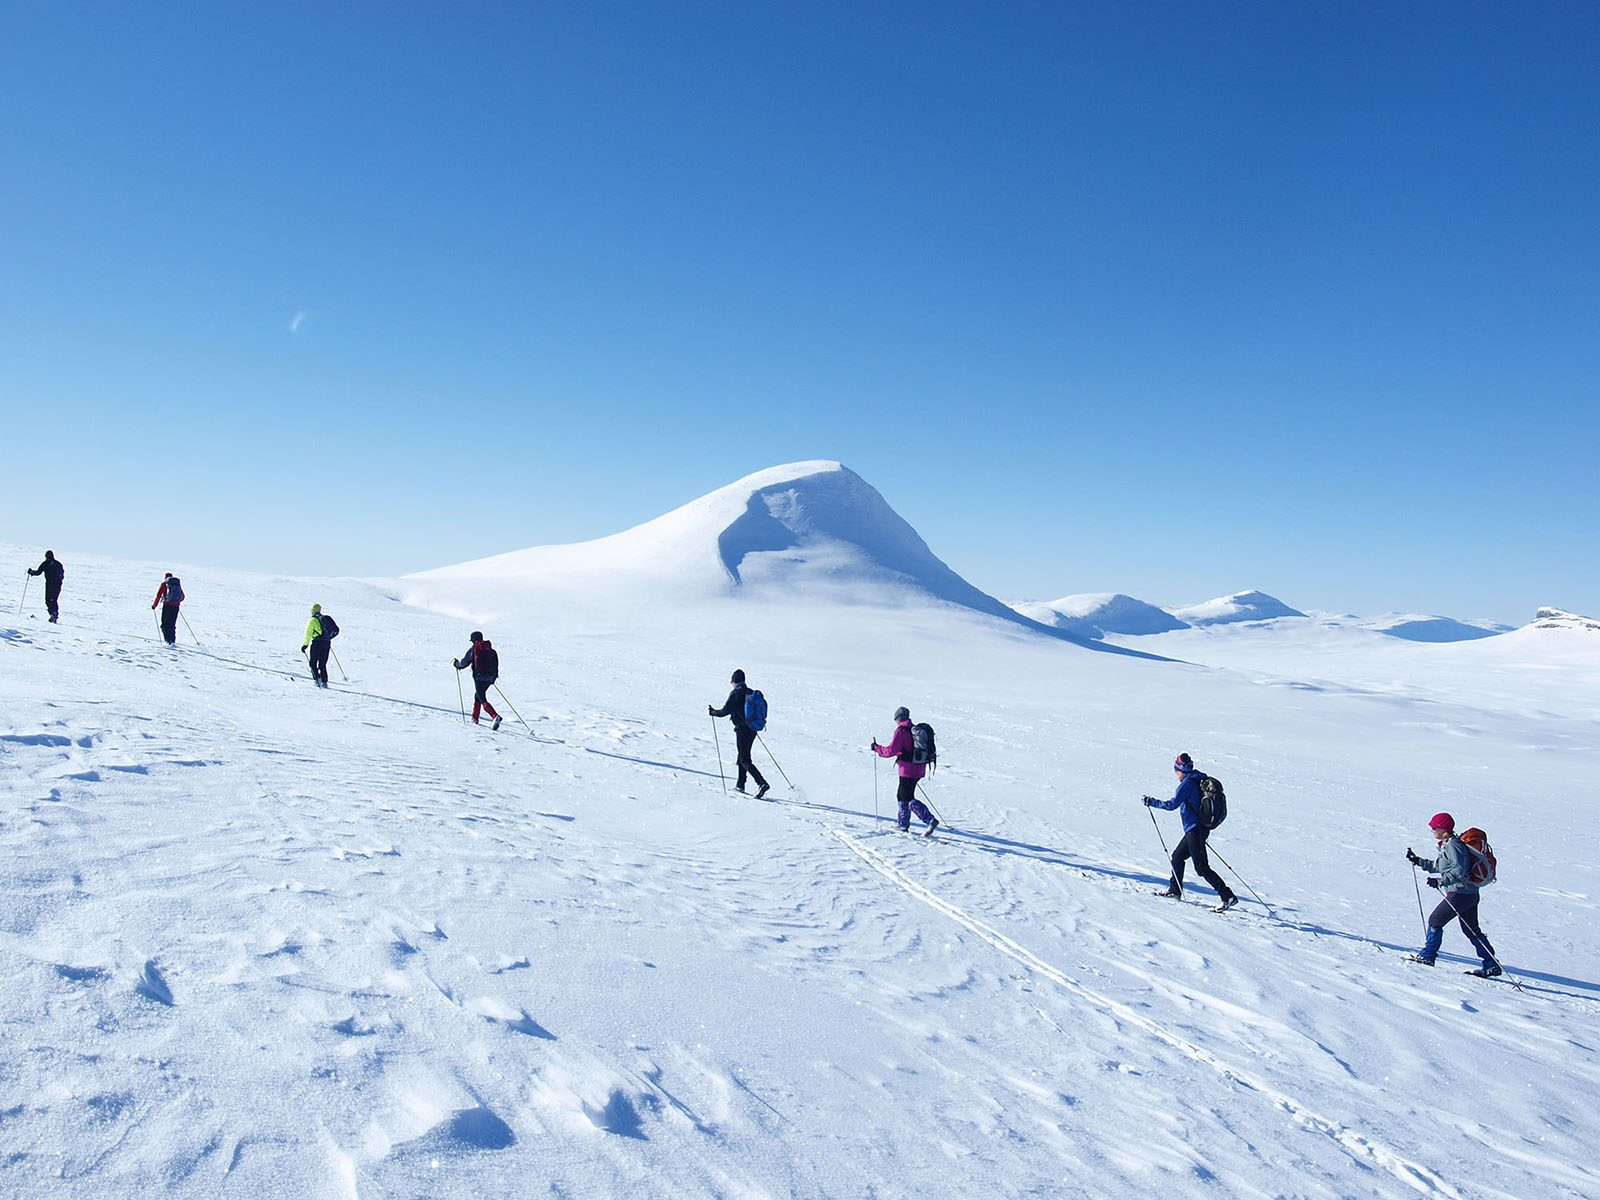 A group of eight skiers ski uphill in the mountains